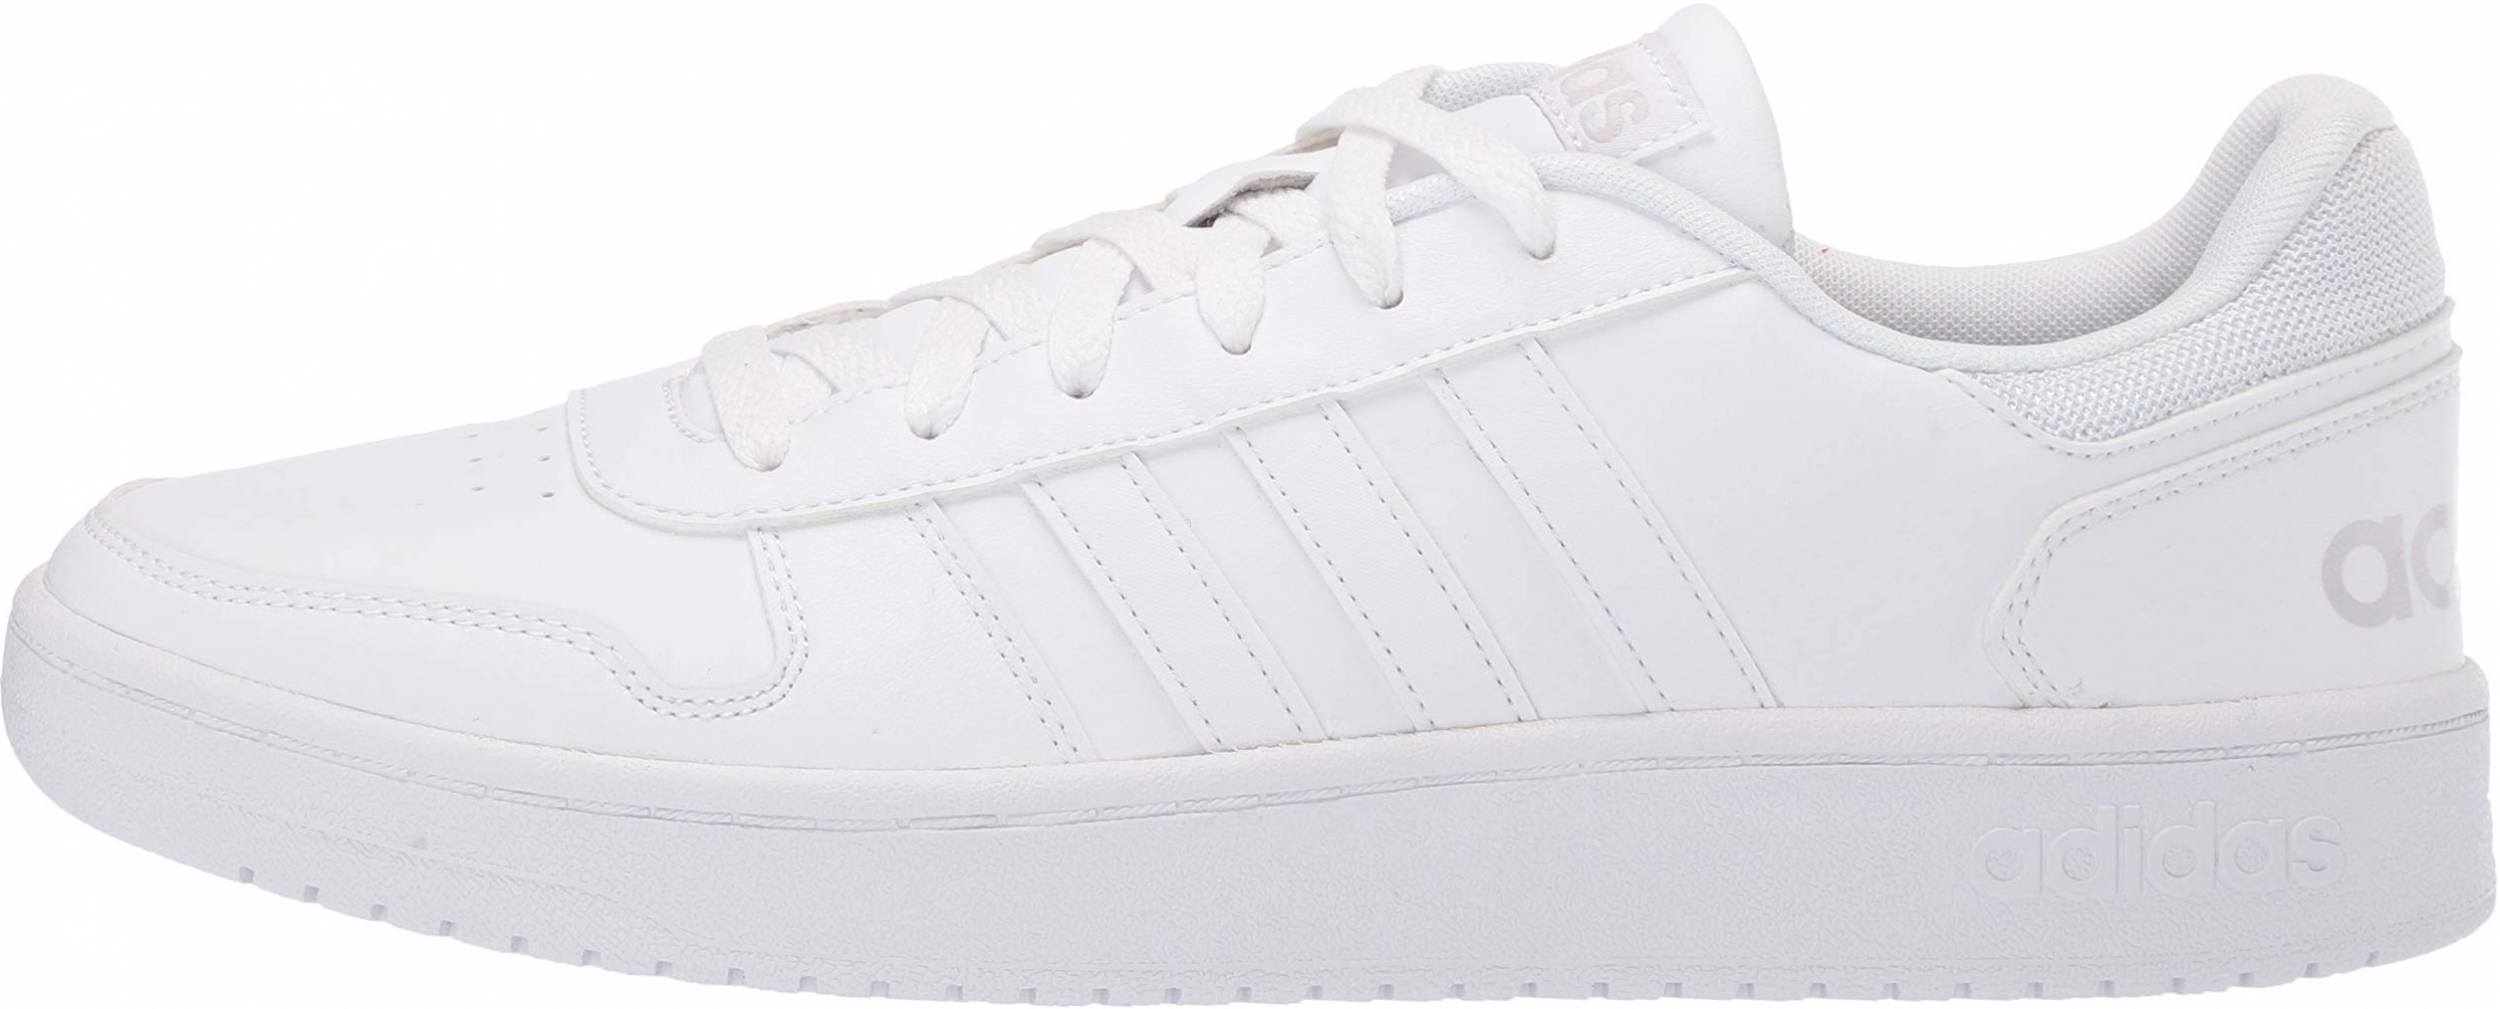 Only £30 + Review of Adidas Hoops 2.0